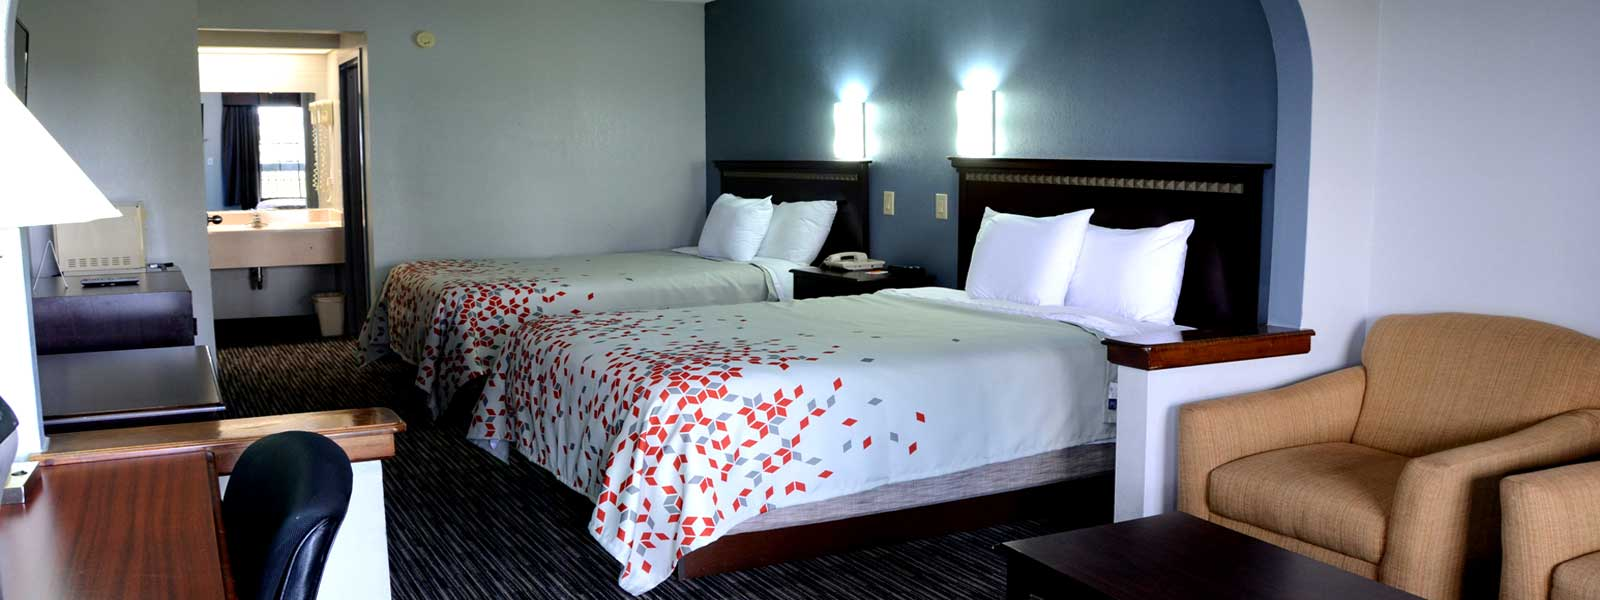 Gateway Inn and Suites Affordable Clean Comfortable Rooms Newly Remodeled Close to Downtown